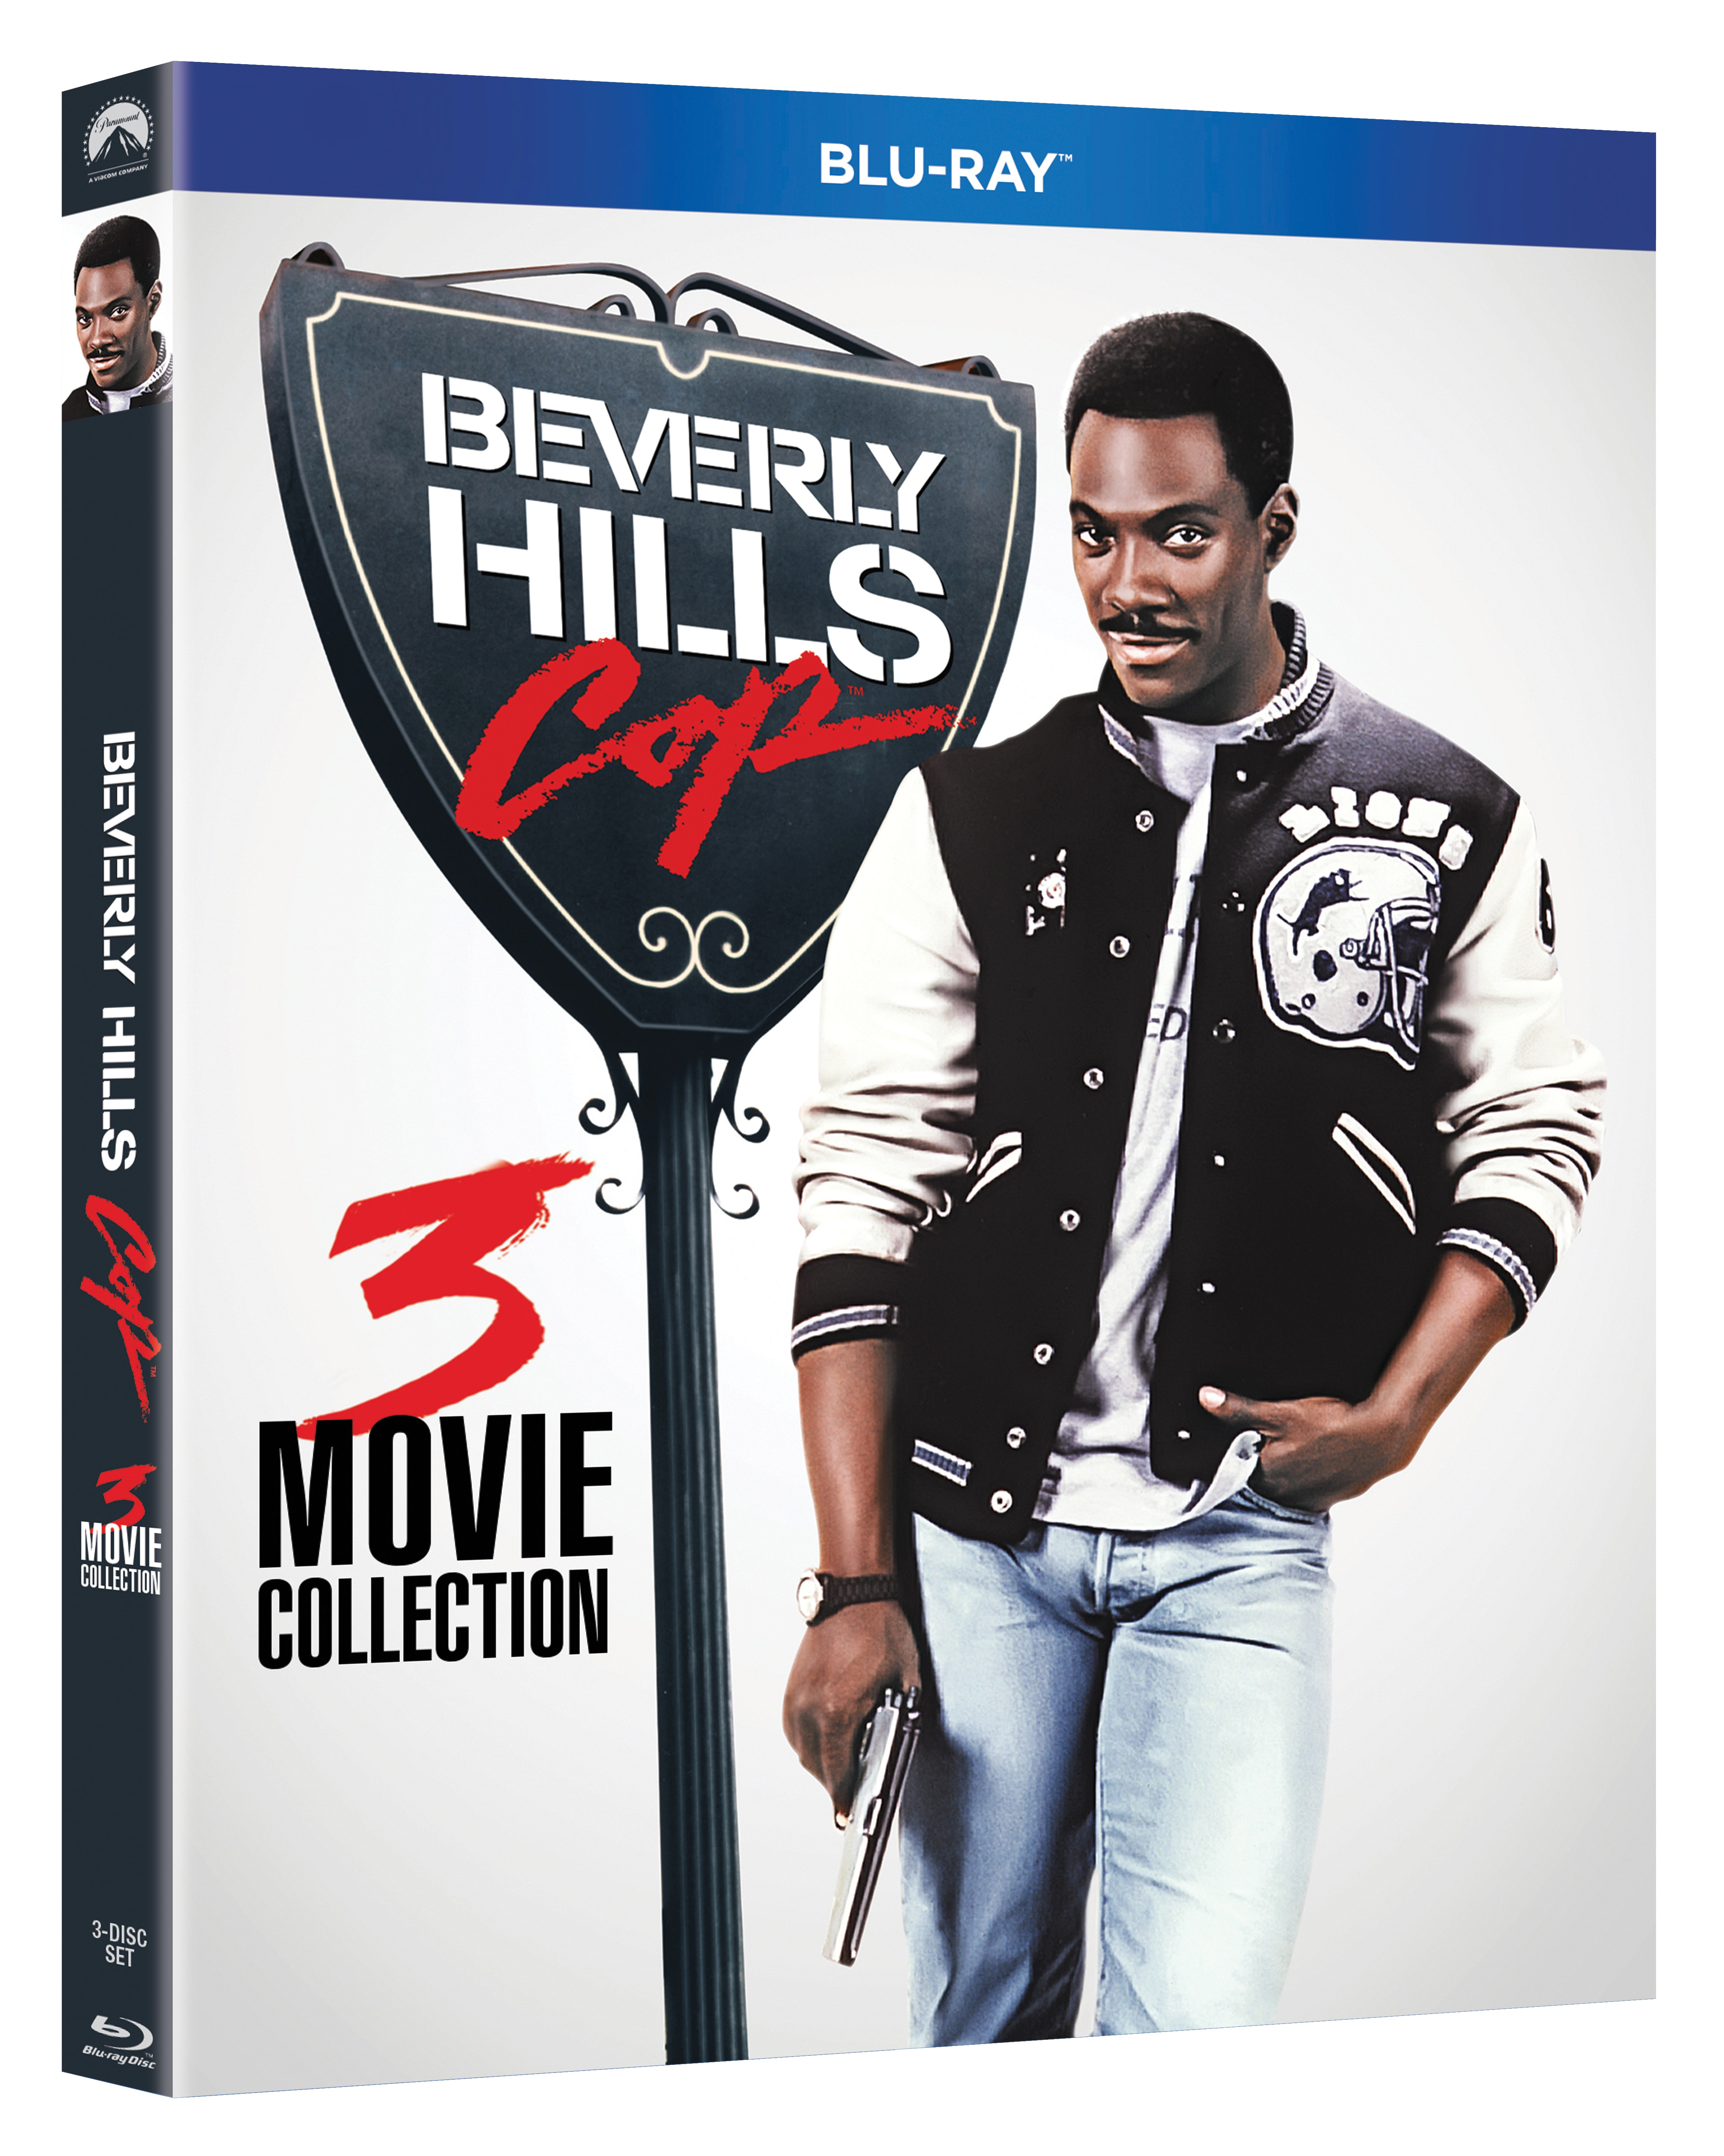 Beverly Hills Cop Collection Blu-ray Review